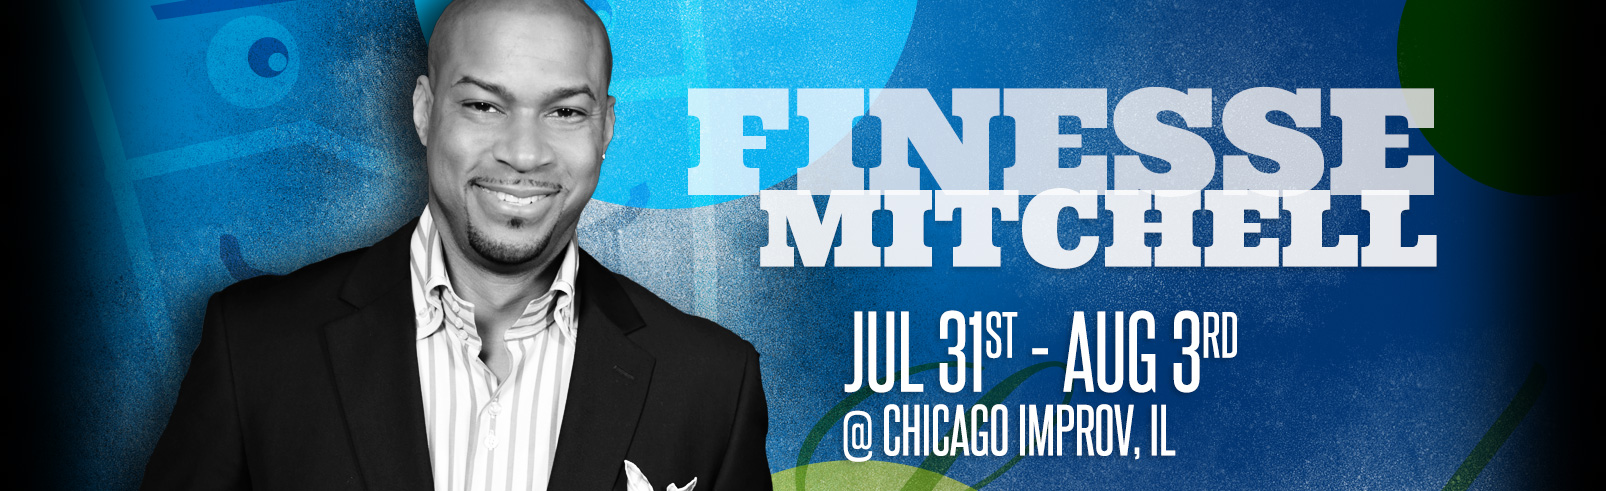 Finesse Mitchell @ Chicago Improv